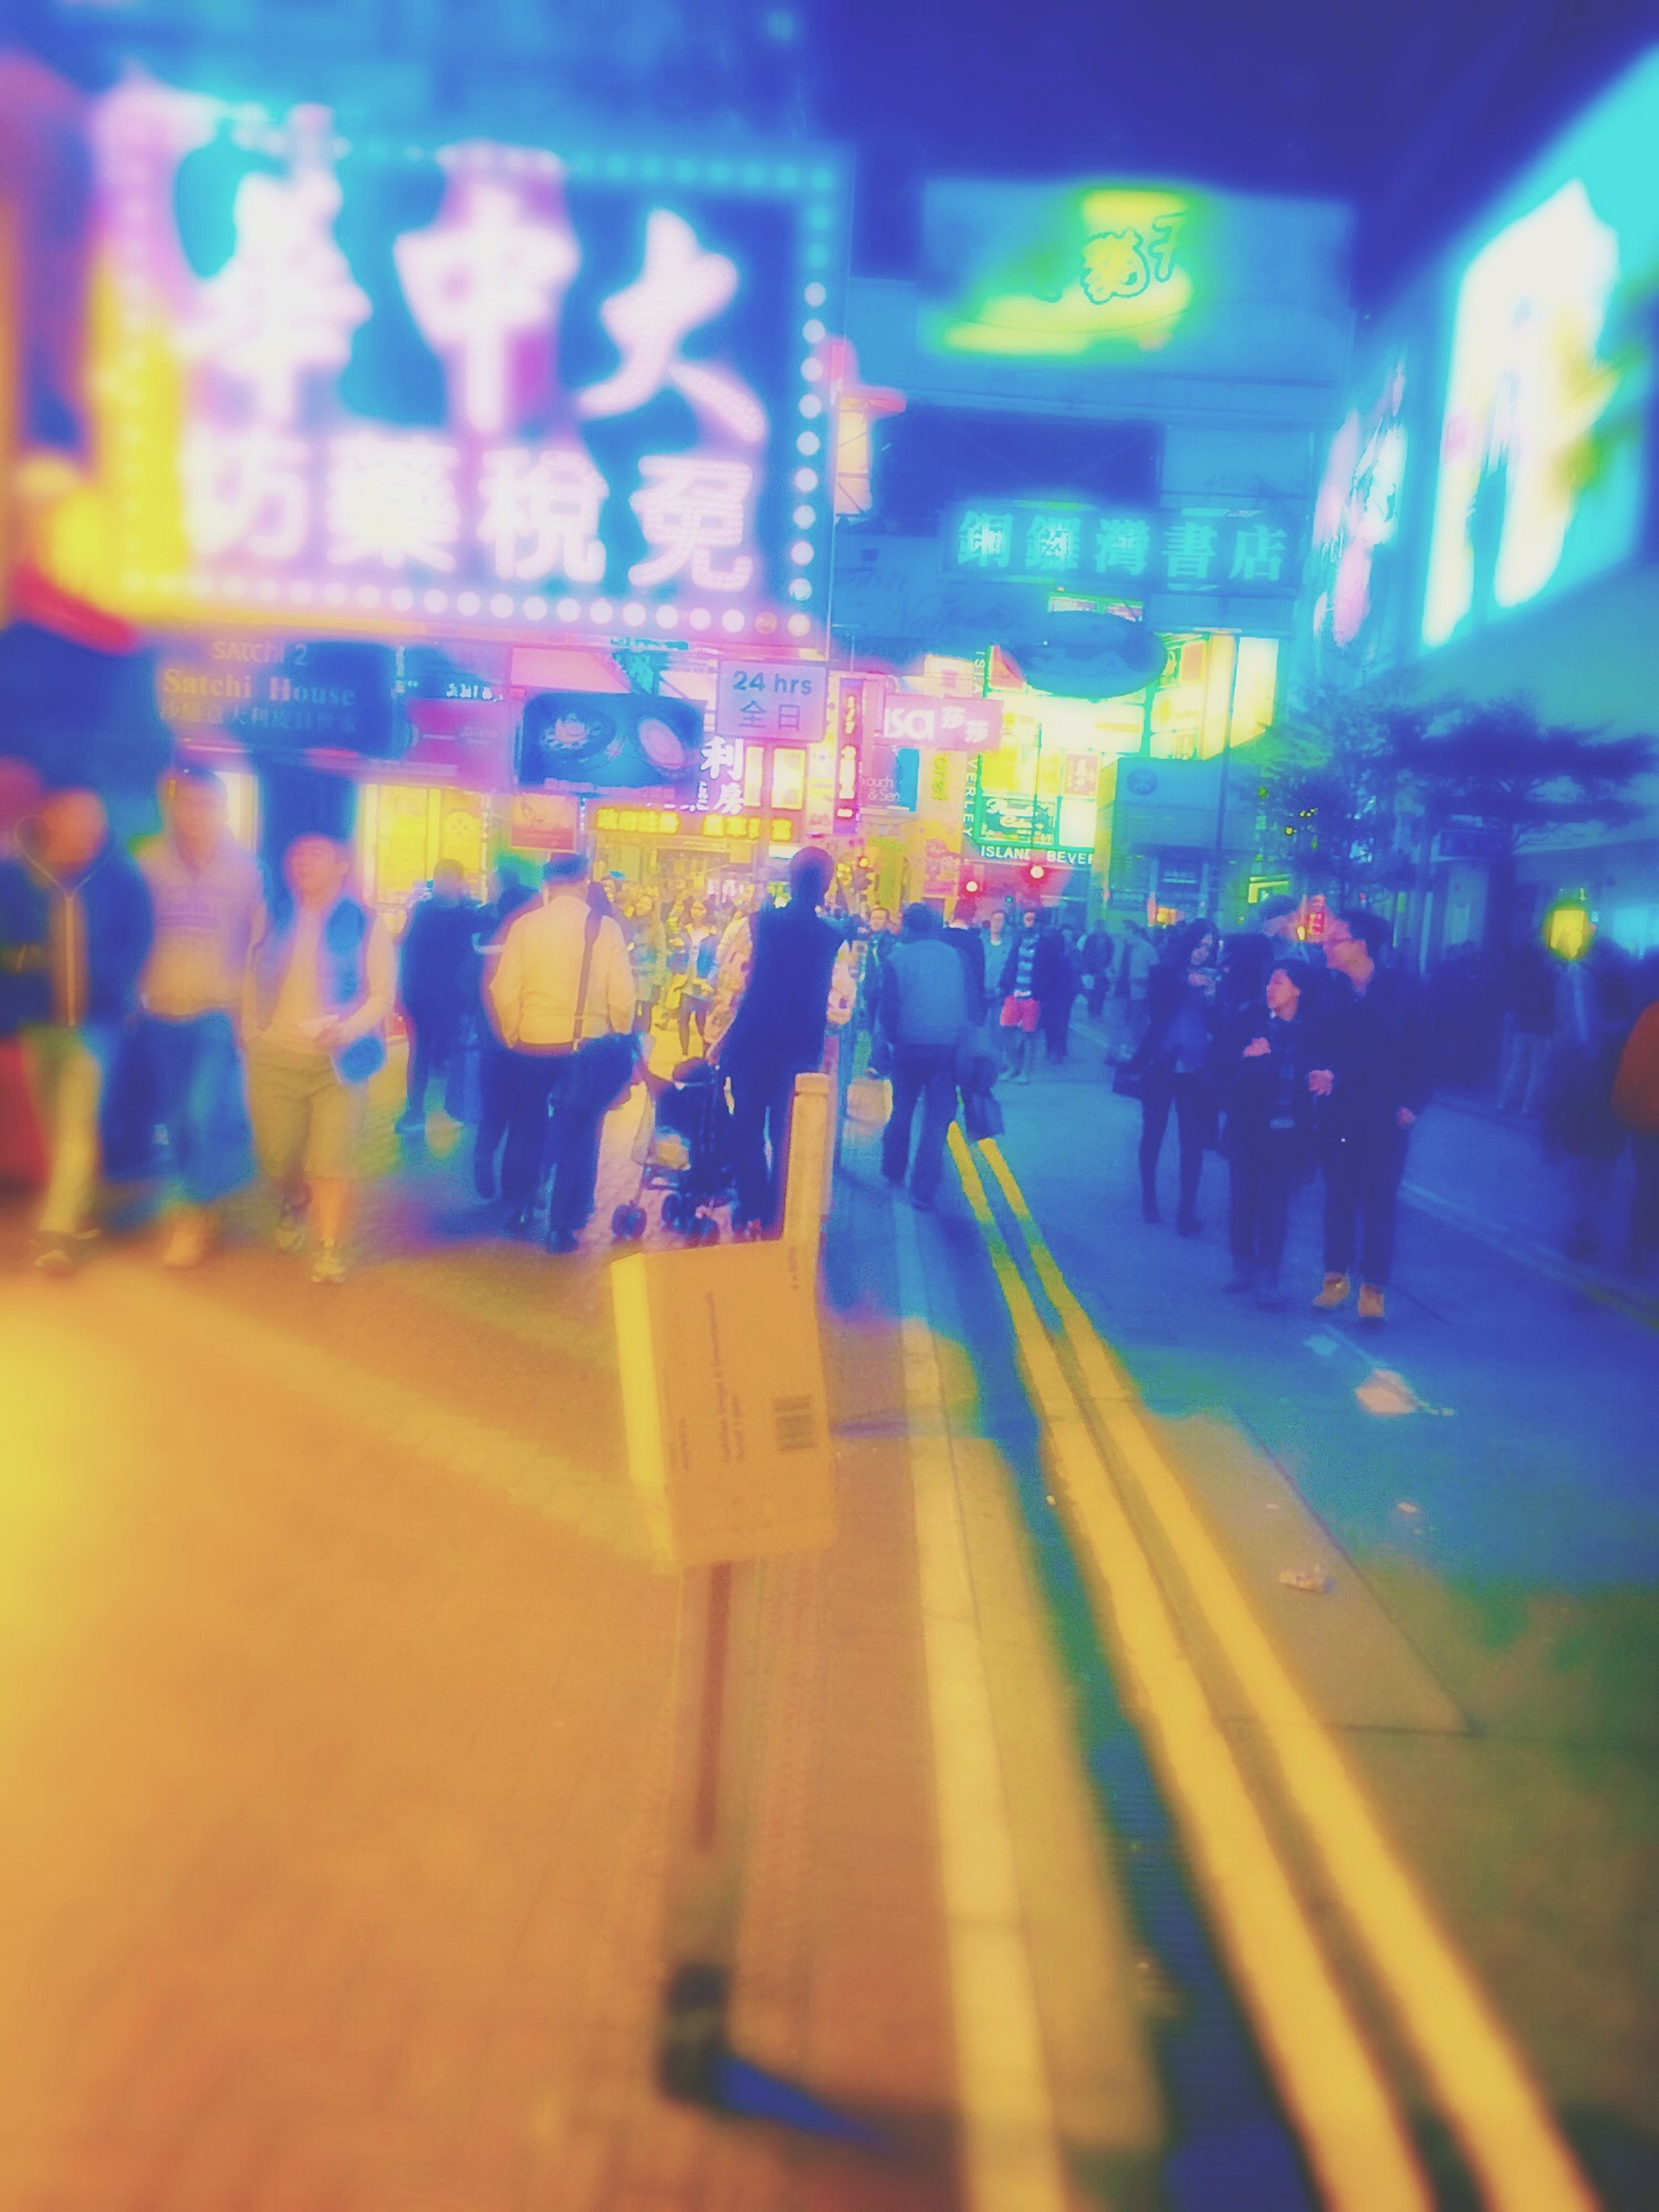 illuminated, transportation, lifestyles, men, person, city life, large group of people, indoors, blurred motion, walking, city, night, railroad station, leisure activity, public transportation, travel, street, incidental people, architecture